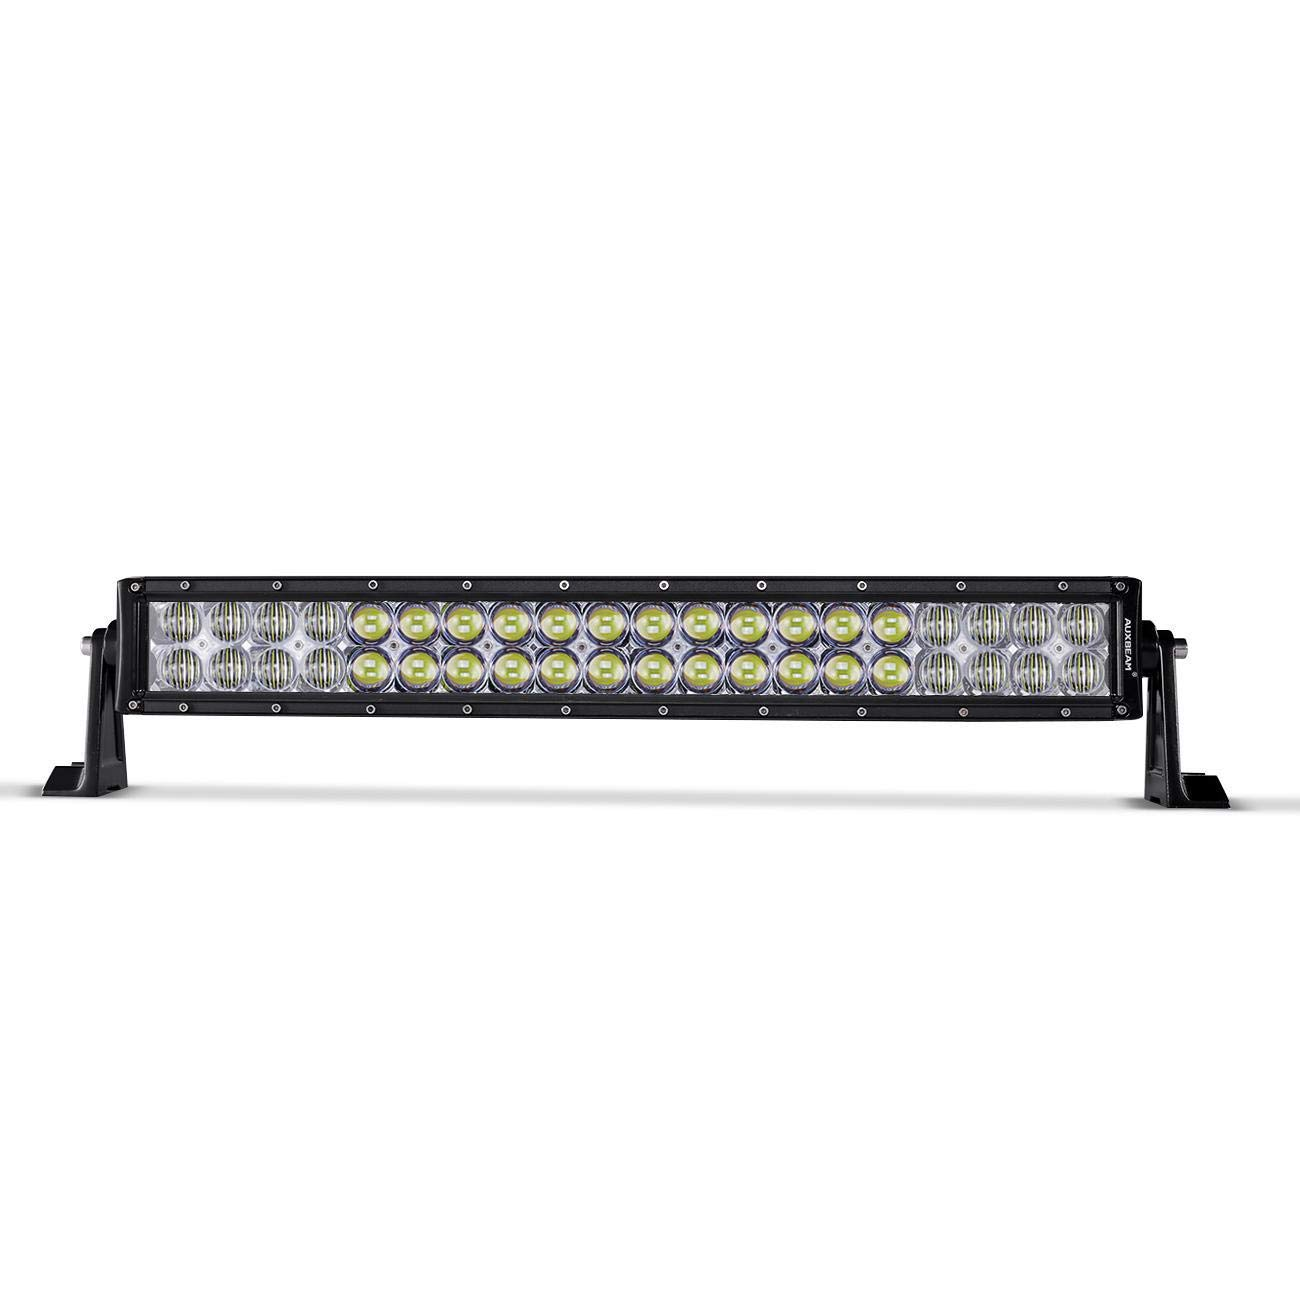 Auxbeam LED Work Light Bar 22inch 120W Curved Double Row 5D Offroad RGB Strobe Light Bar Combo Beam Spot&Flood Color Changing by Bluetooth App Remote Control Mobile Warning Light